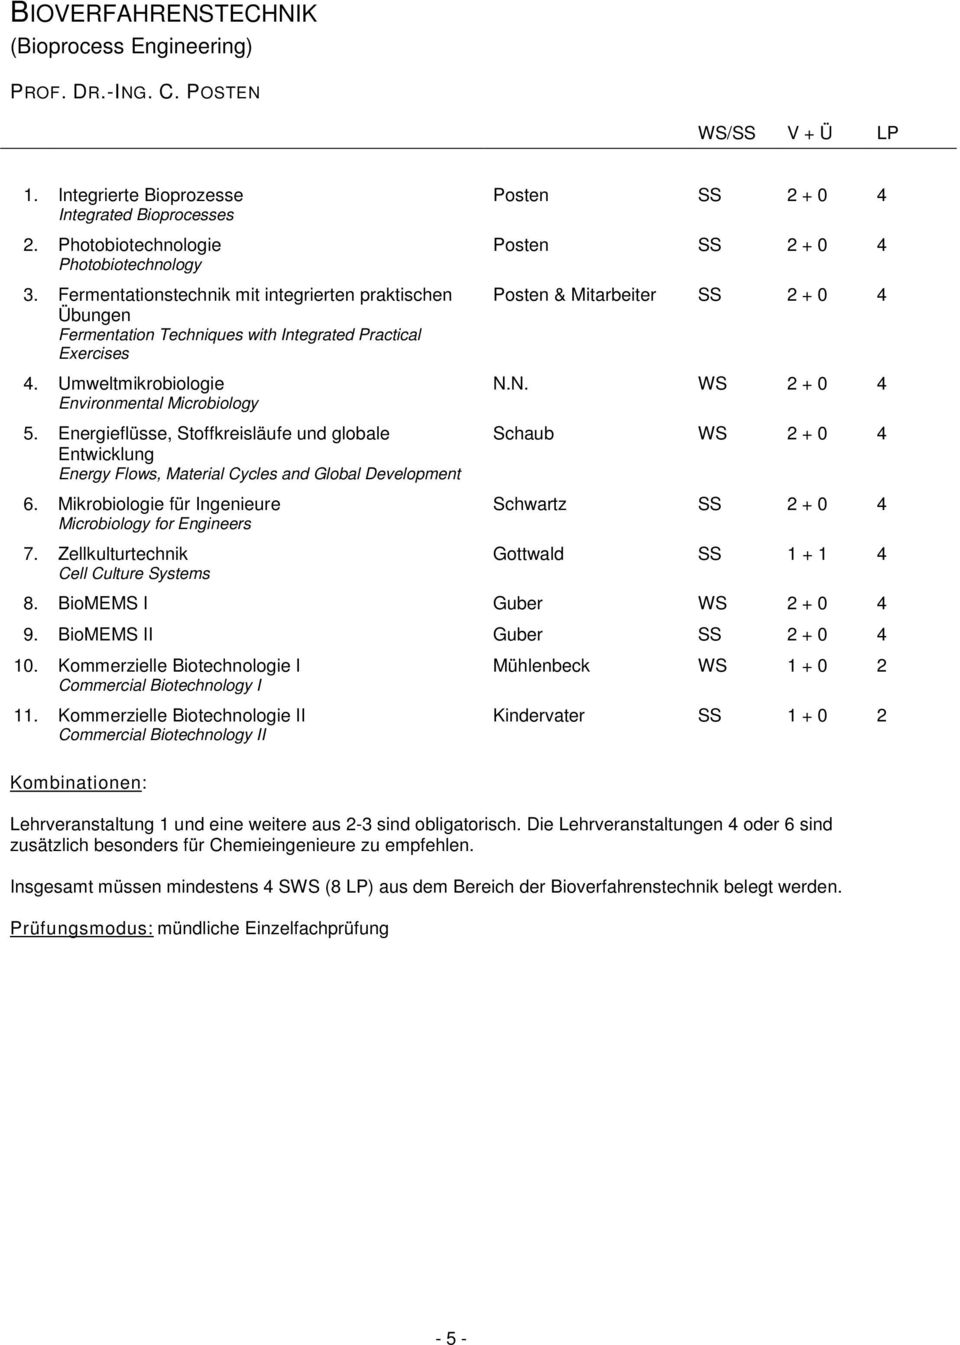 Energieflüsse, Stoffkreisläufe und globale Entwicklung Energy Flows, Material Cycles and Global Development 6. Mikrobiologie für Ingenieure Microbiology for Engineers 7.